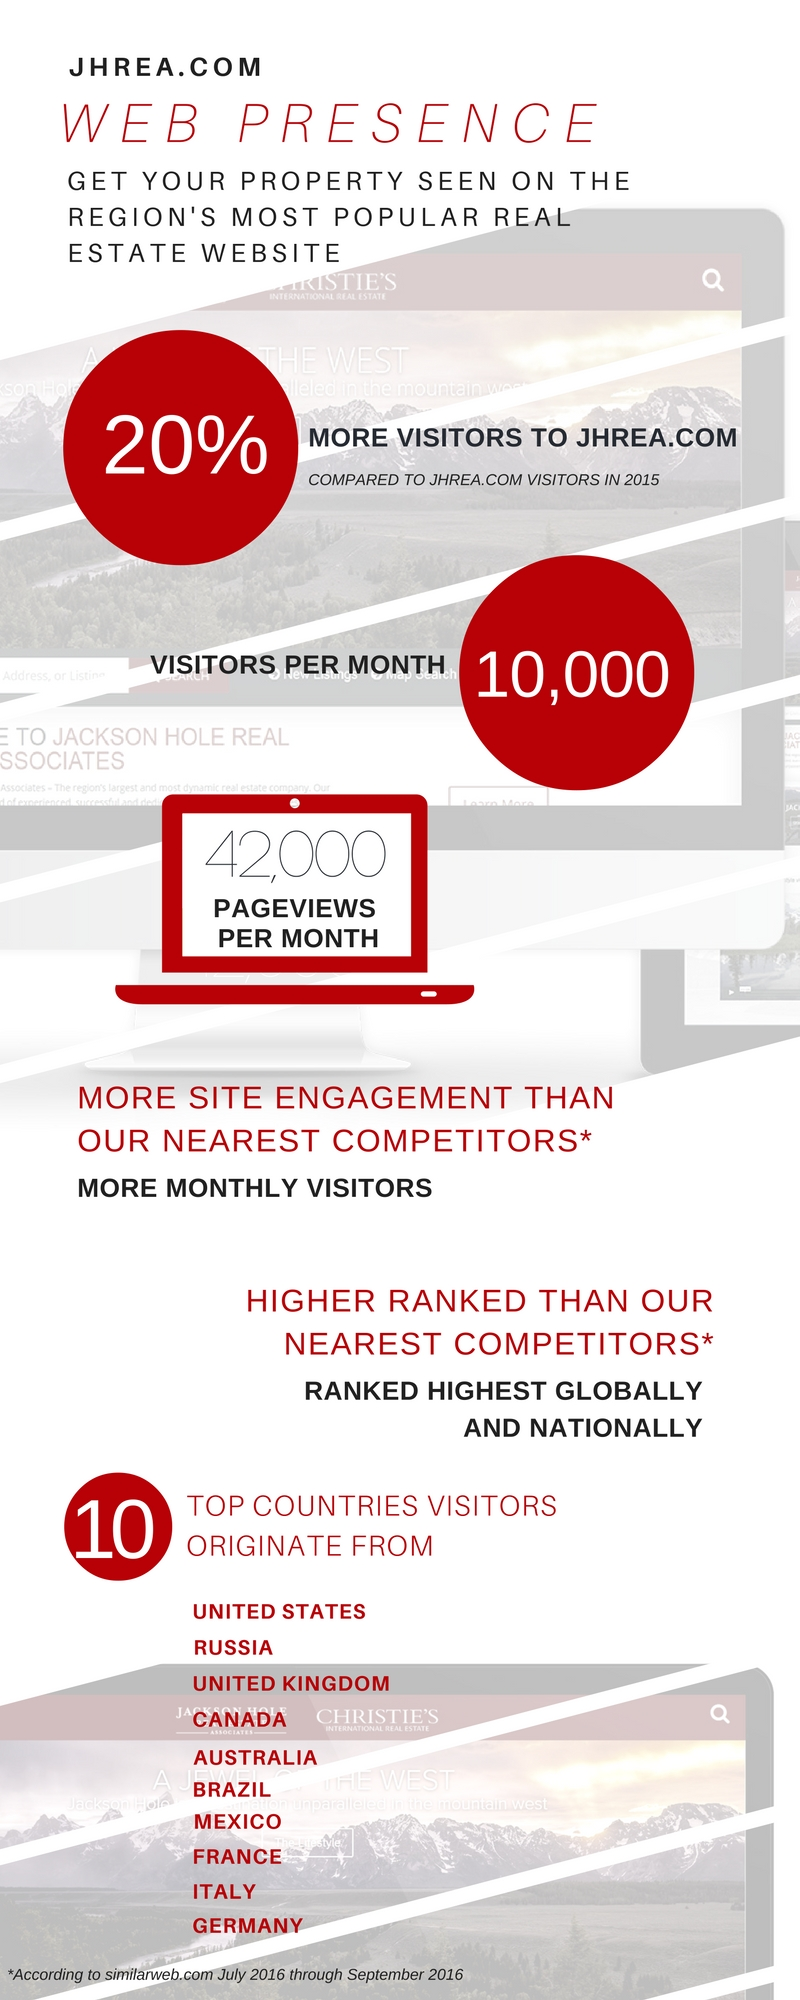 web-presence-infographic-october-2016